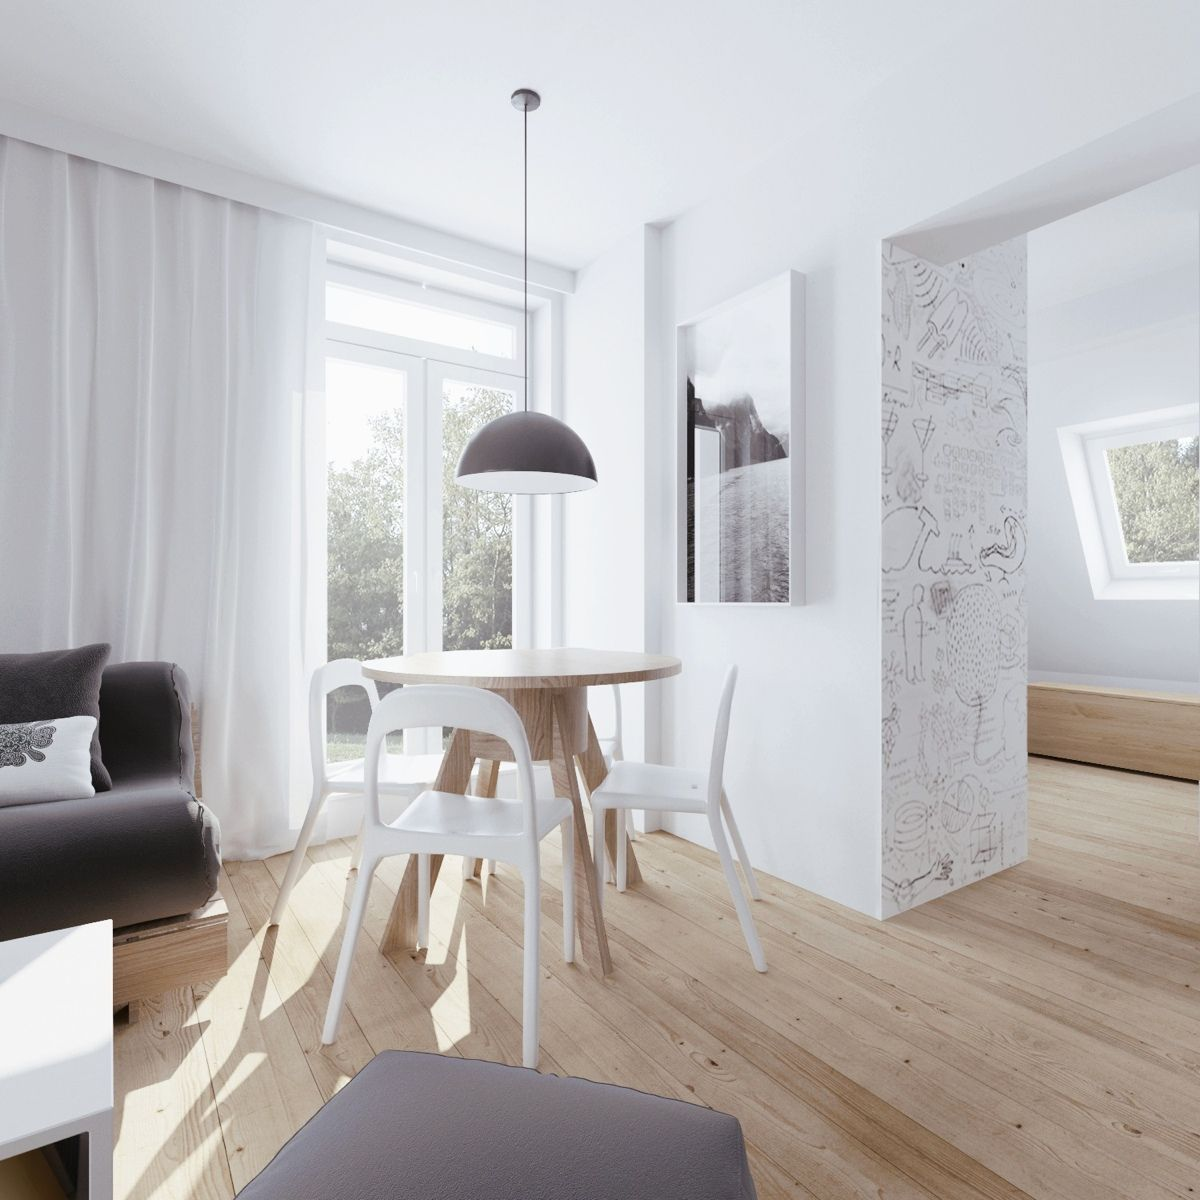 Minimalist Apartment Design With Soft Color Scheme. Attic  ApartmentApartment Interior DesignClever DesignRound Dining TablesDecor ... Good Ideas